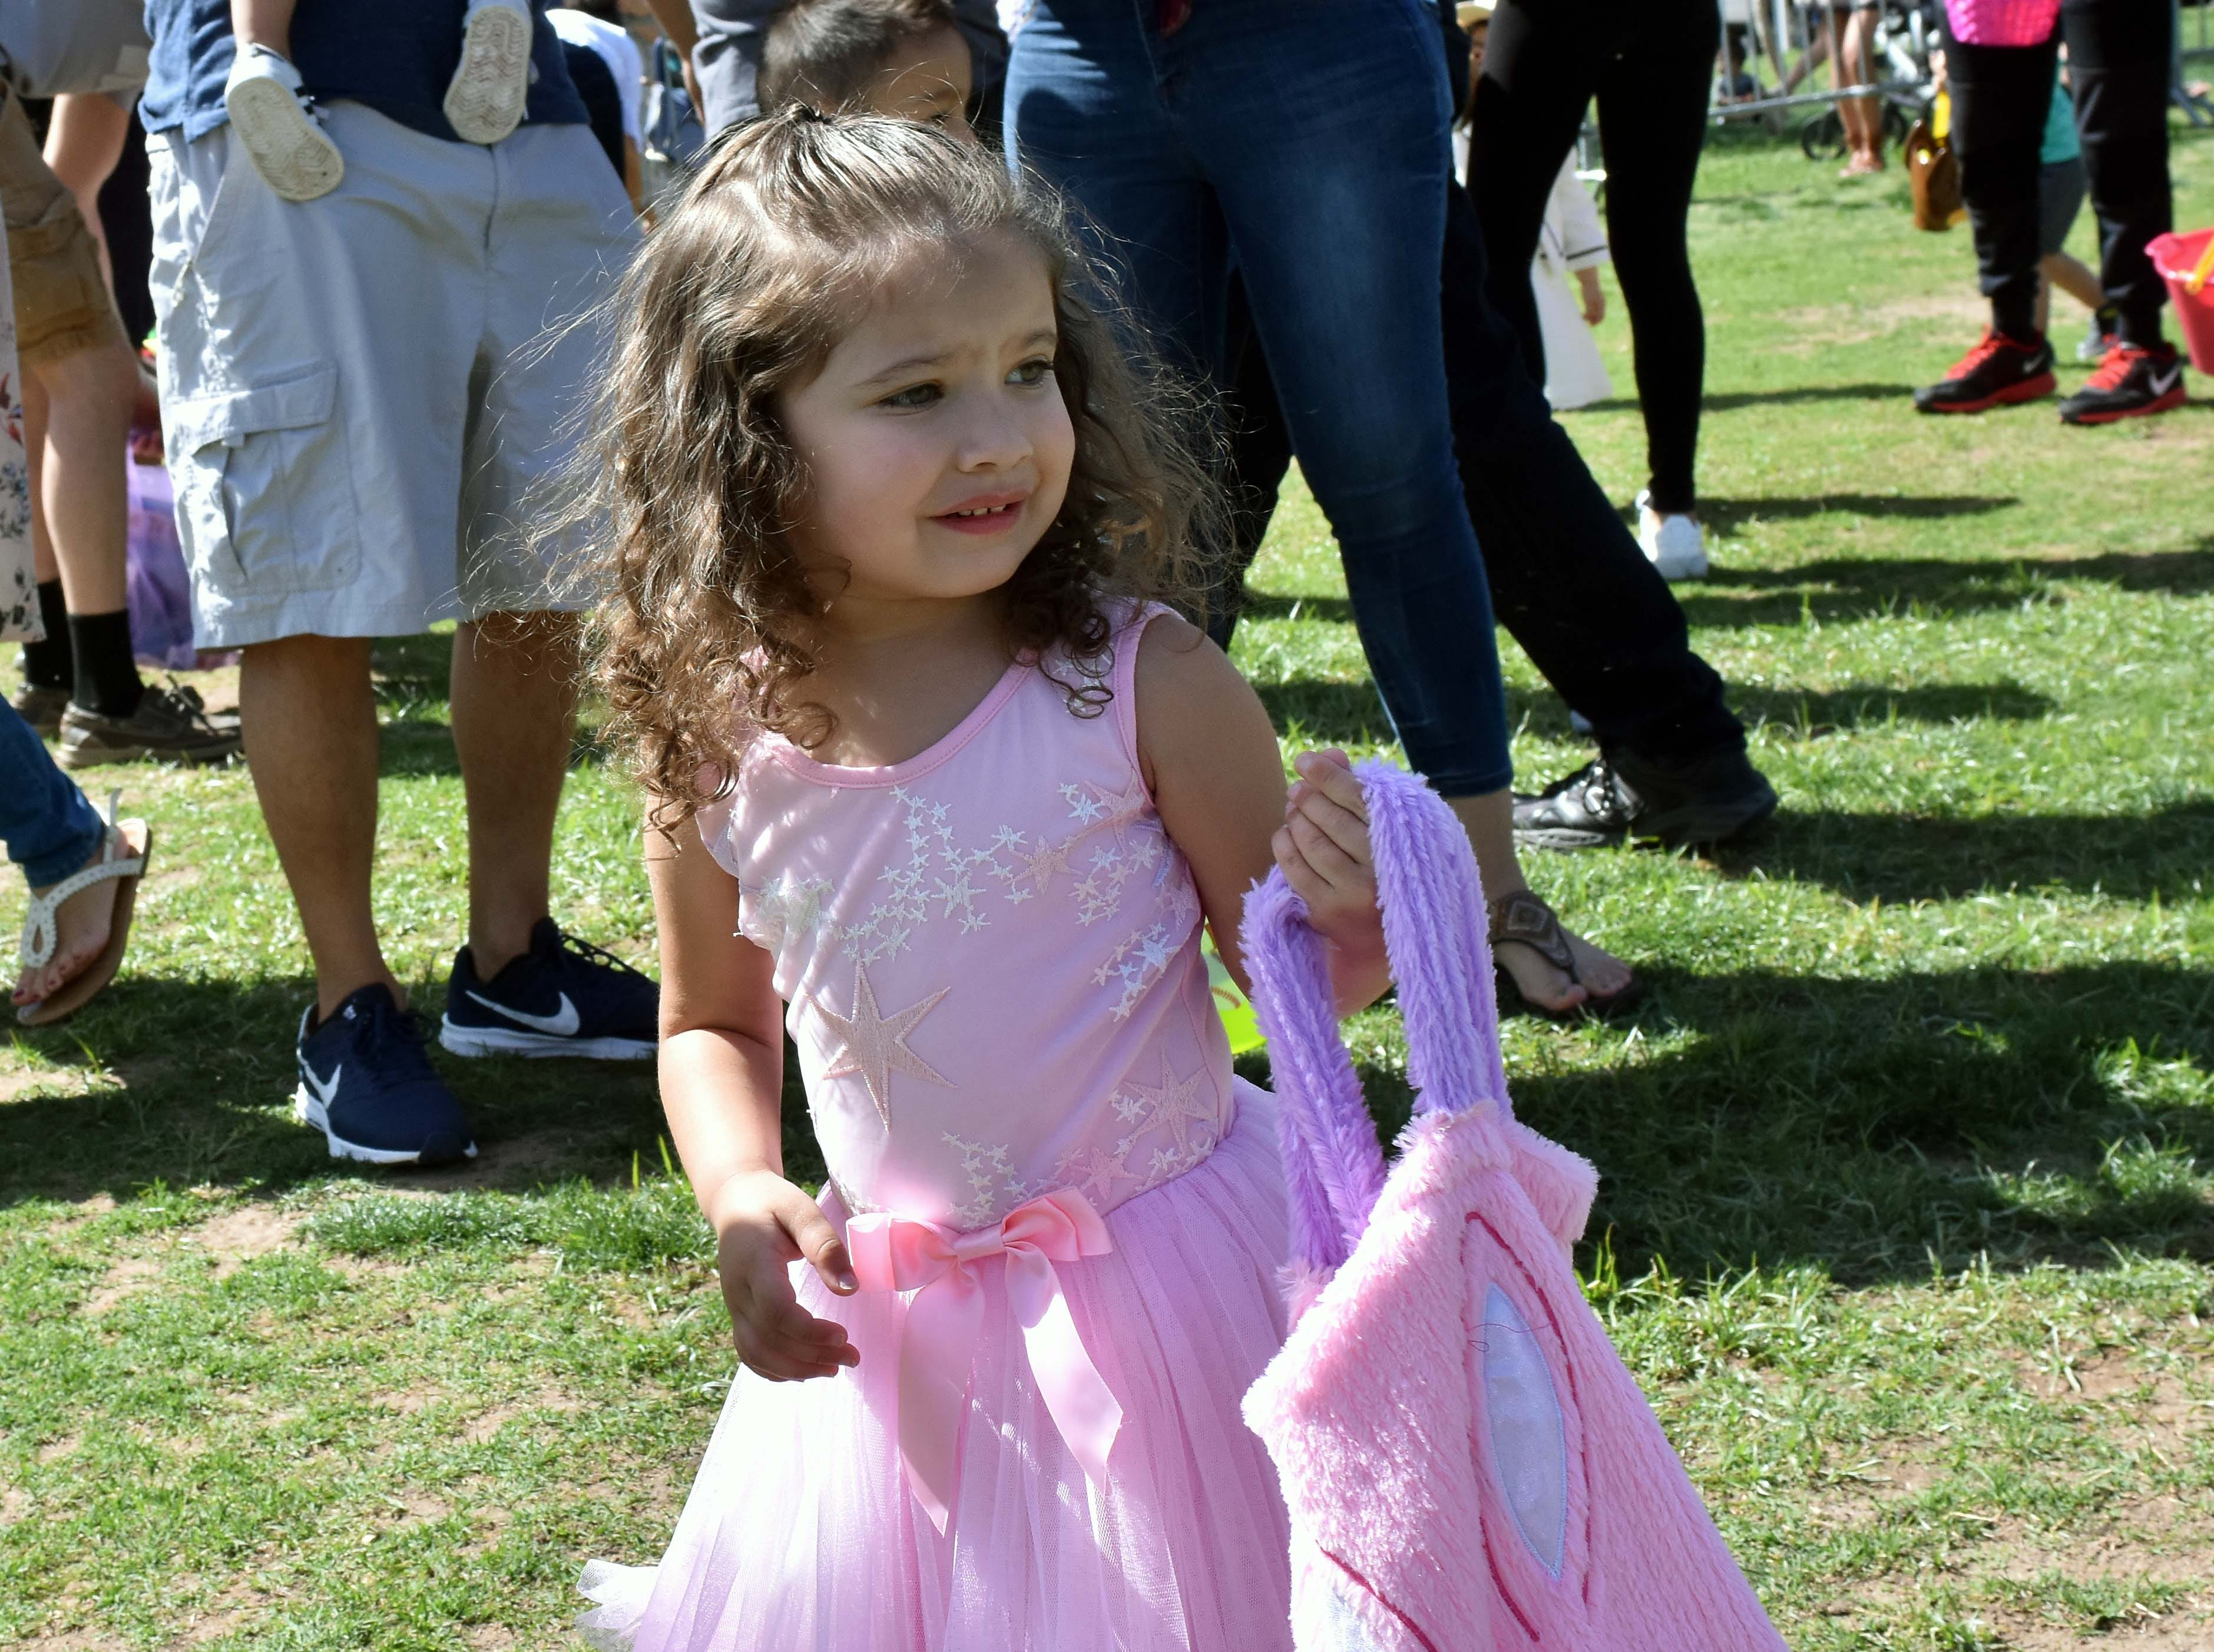 Natalia Lara, 2, looks for eggs scattered across the field during this year's SpringFest at Young Park on Saturday, April 20, 2019.